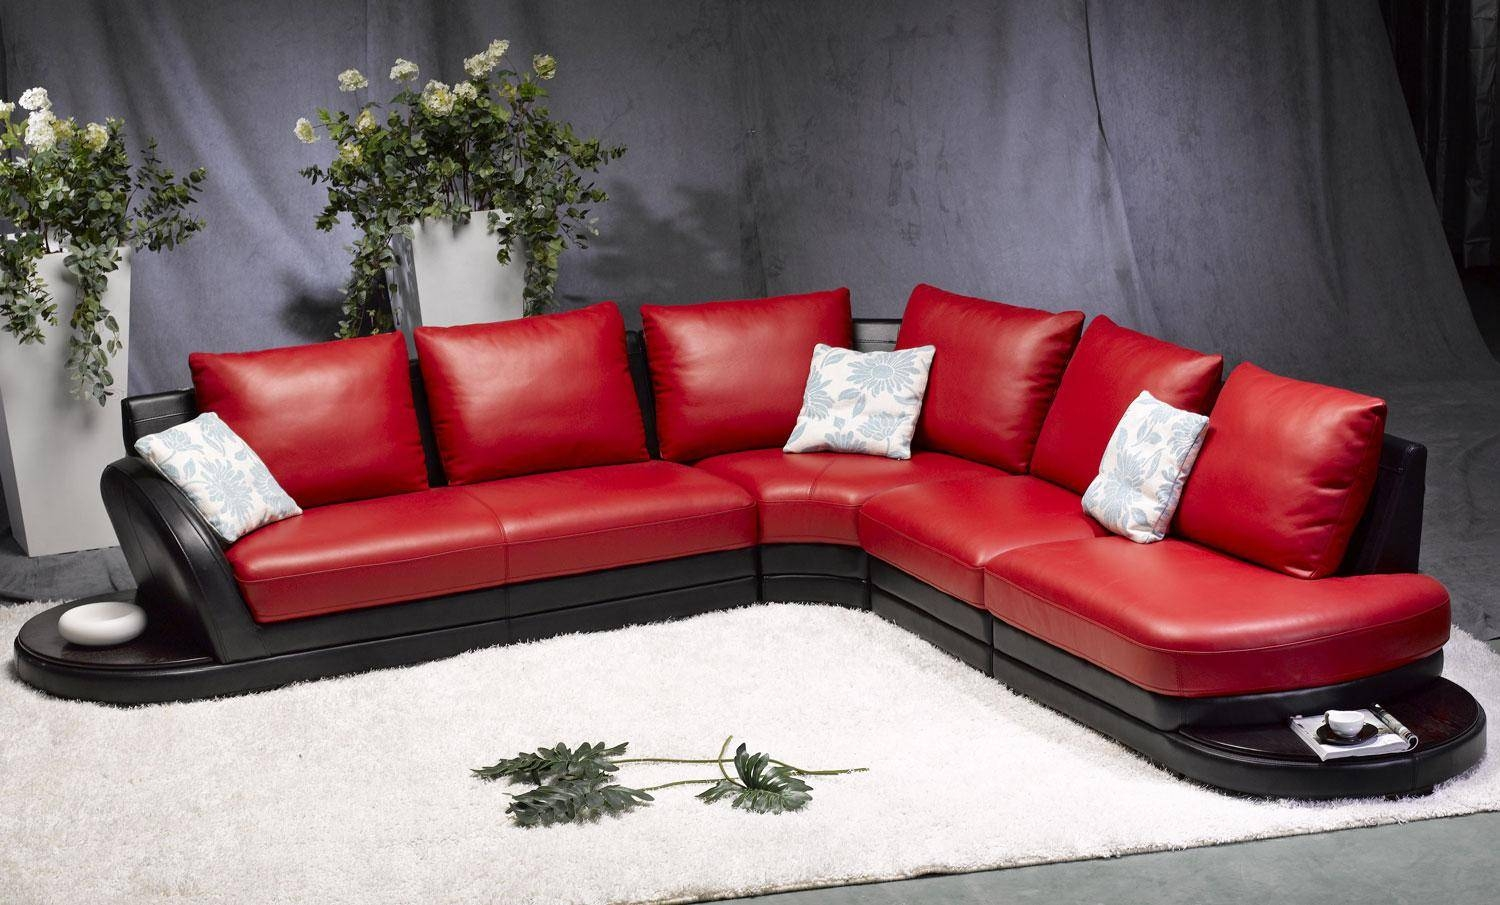 Red And Black Couch Pillows | Couch & Sofa Ideas Interior Design with regard to Black And Red Sofas (Image 13 of 15)